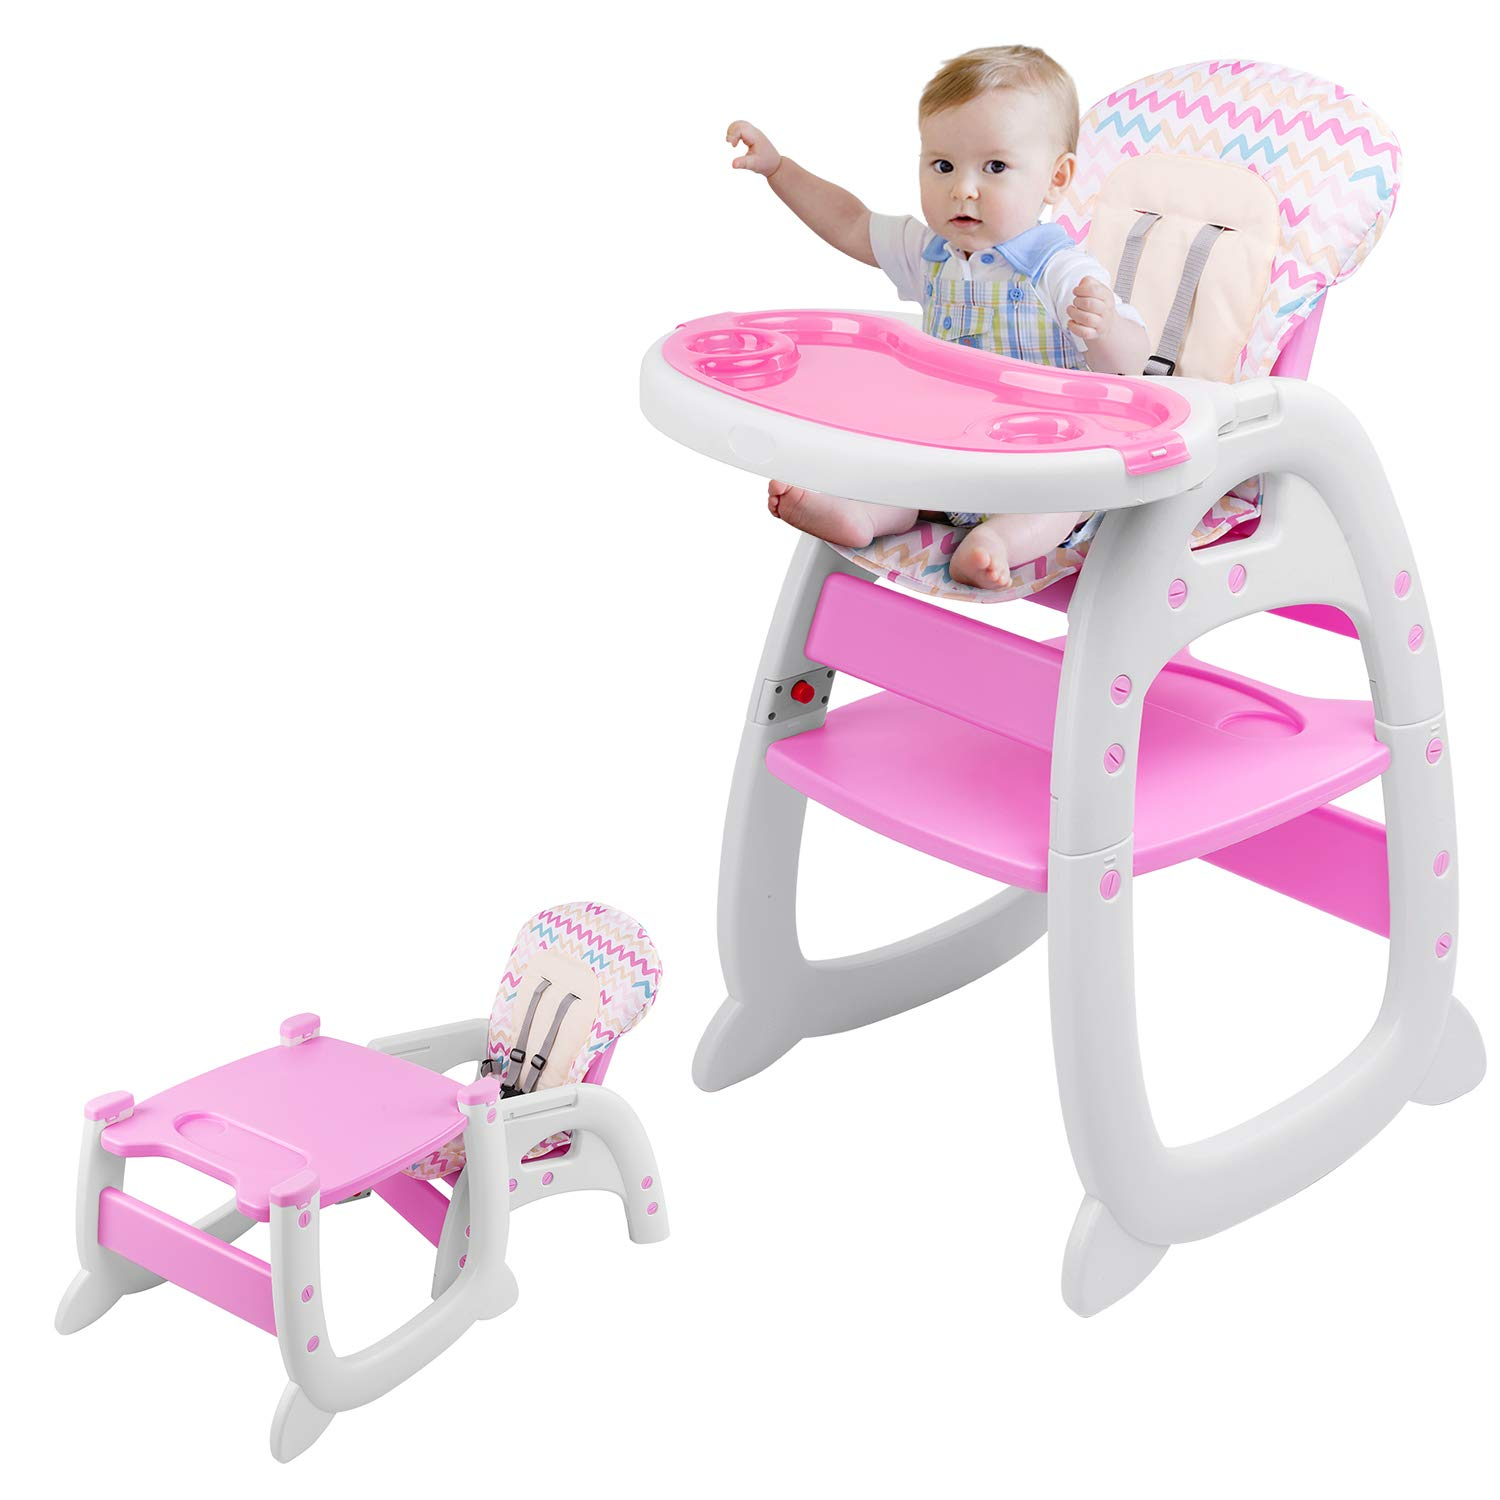 Highchair, 2 in 1 Convertible Play Table Set, Kids Table and Chairs, 5-Point Harness, with Removable Tray, Easy to Clean, Multifunctional Highchair, Suitable, for Feeding and Playing (Pink) by AuAg